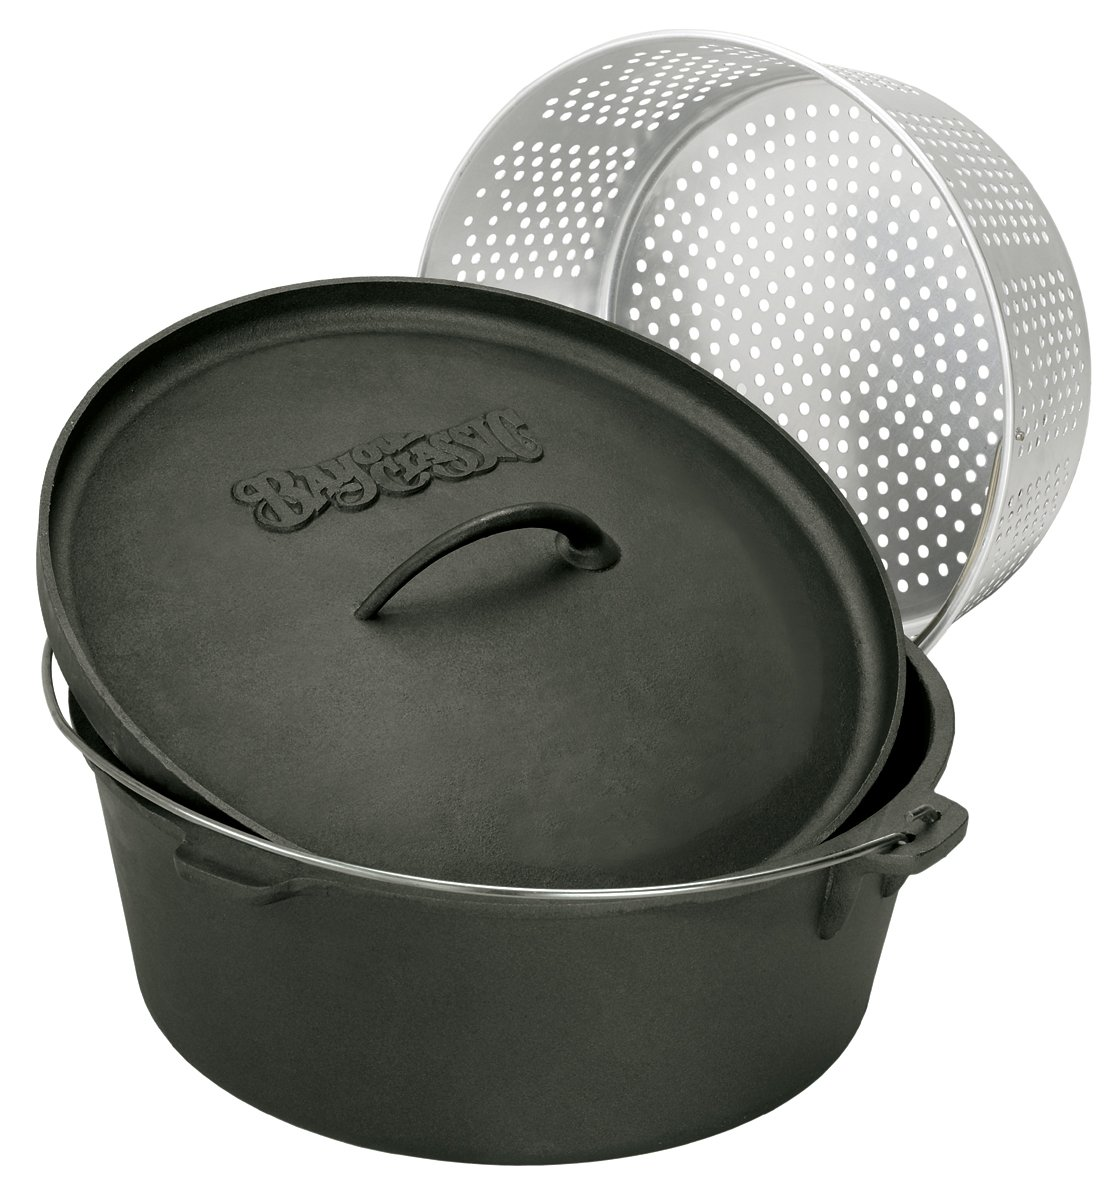 Bayou Classic 7420 20 Quart Perforated